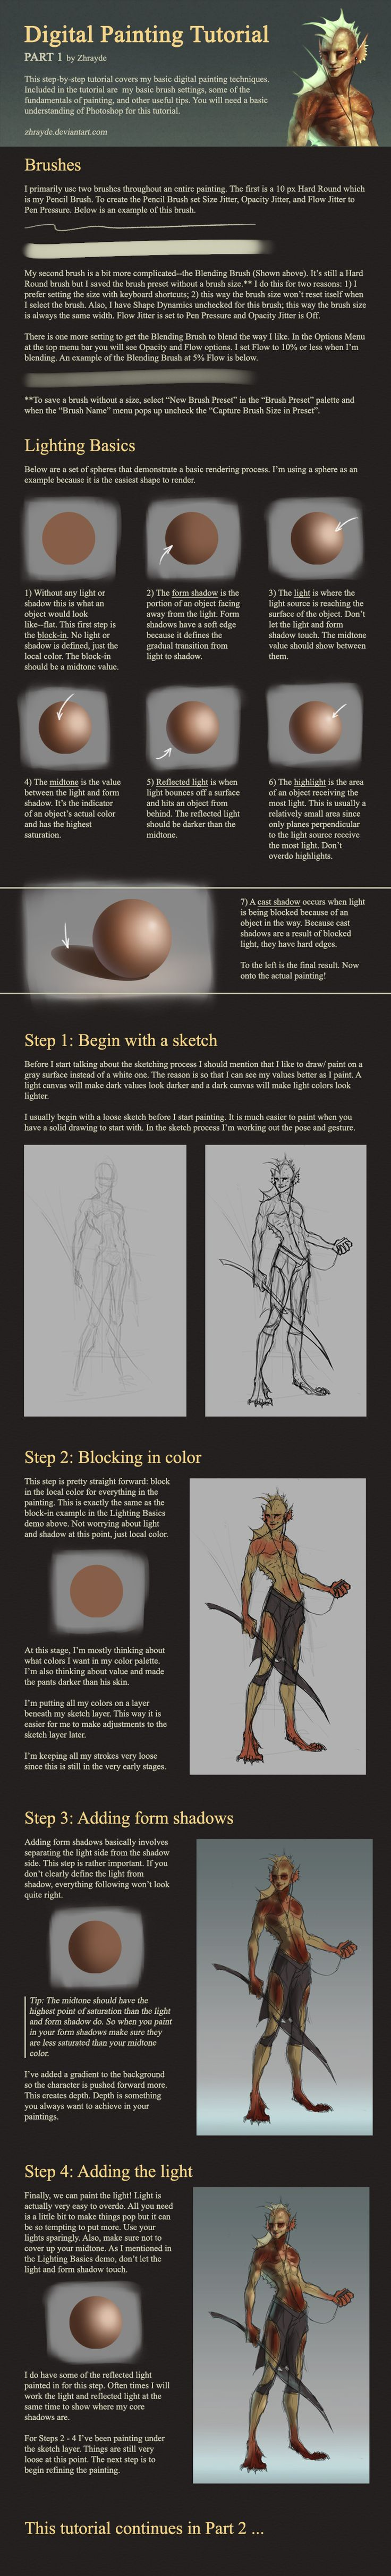 Digital Painting Tutorial - Part 1 by Zhrayde on DeviantArt